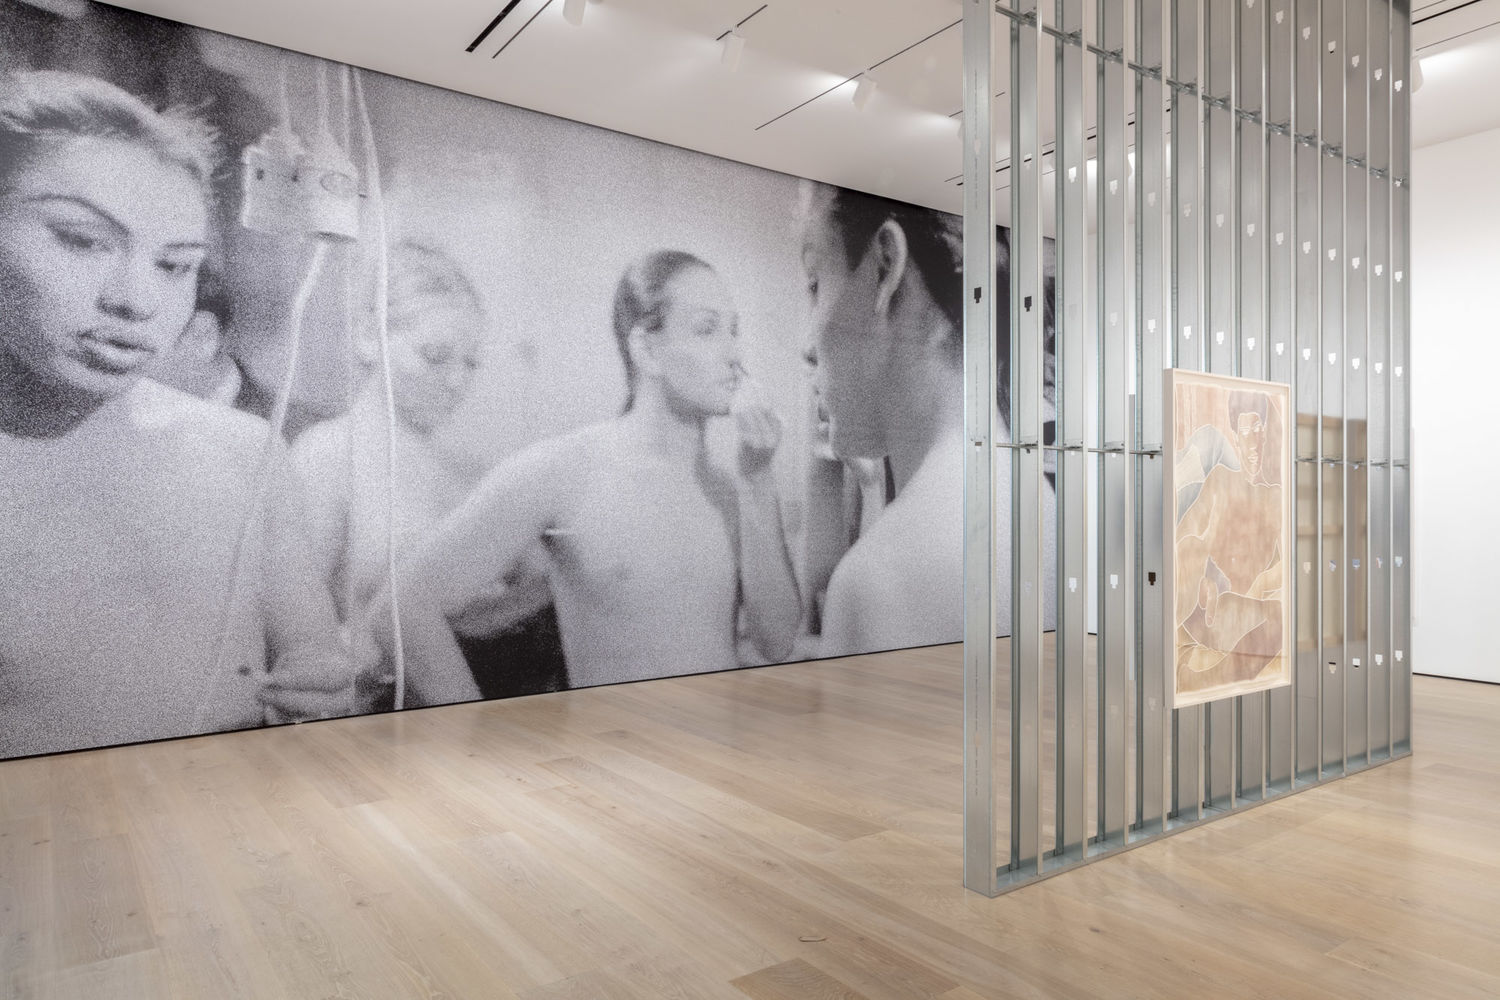 A large gallery with a black and white floor-to-ceiling photomural on the back wall. In the mural, four people are visible from the waist up with hair tied back. One is applying makeup. A power cord hangs across the foreground on the left. In the foreground of the gallery is a wall of metal studs with an arwork of muted colors hanging on it.